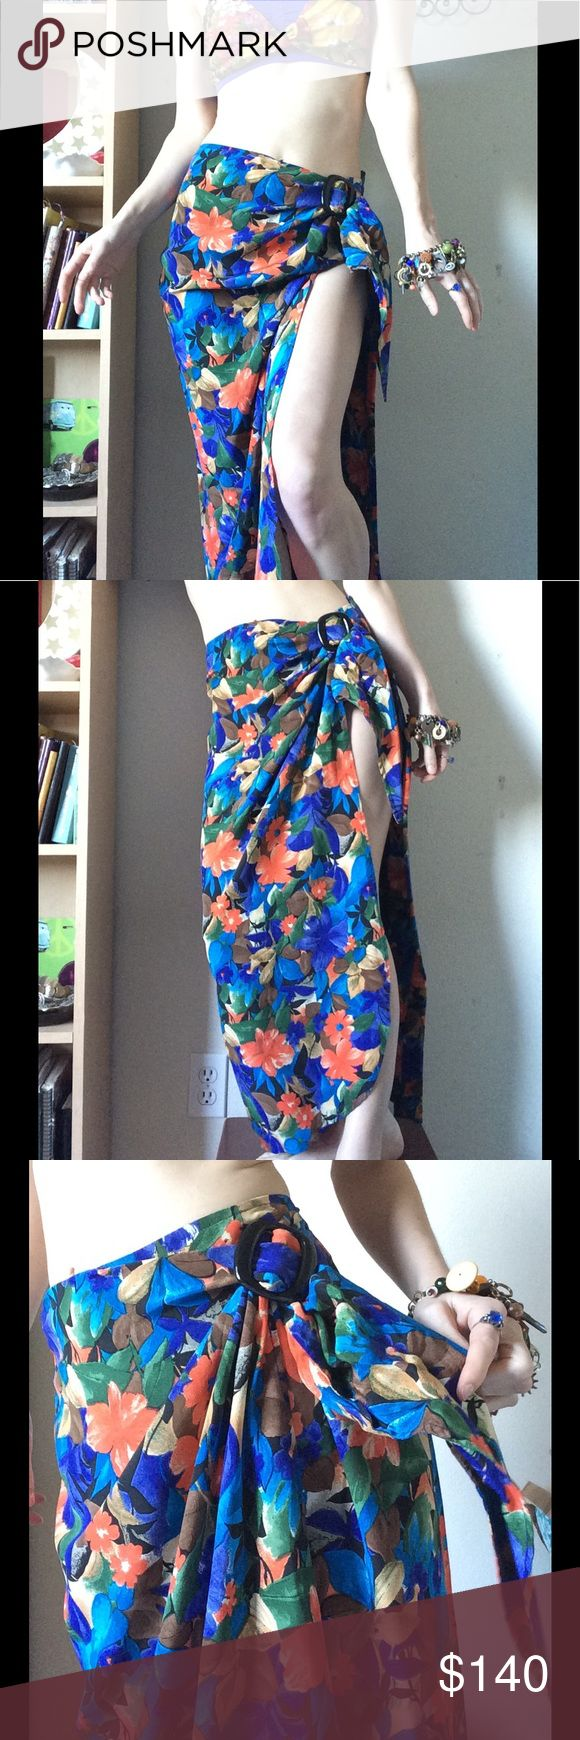 PURE SILK Tropical Hawaiian Hibiscus Sarong Skirt Stunning old school 50's beach vibe. Vintage express label. Probably 80's. Smoke free home. Excellent, new condition. Overlapping style. You can Button it and wrap around so your legs don't show or Button behind for a slinky bare leg look. Hawaii or Bahamas vacation here we come! Perfect for a swim suit cover up on a cruise. Shawl style. Multi colors like bird of paradise orange and ocean indigo Blue. Size 7. Sarong. Maxi skirt. Tie on hip…